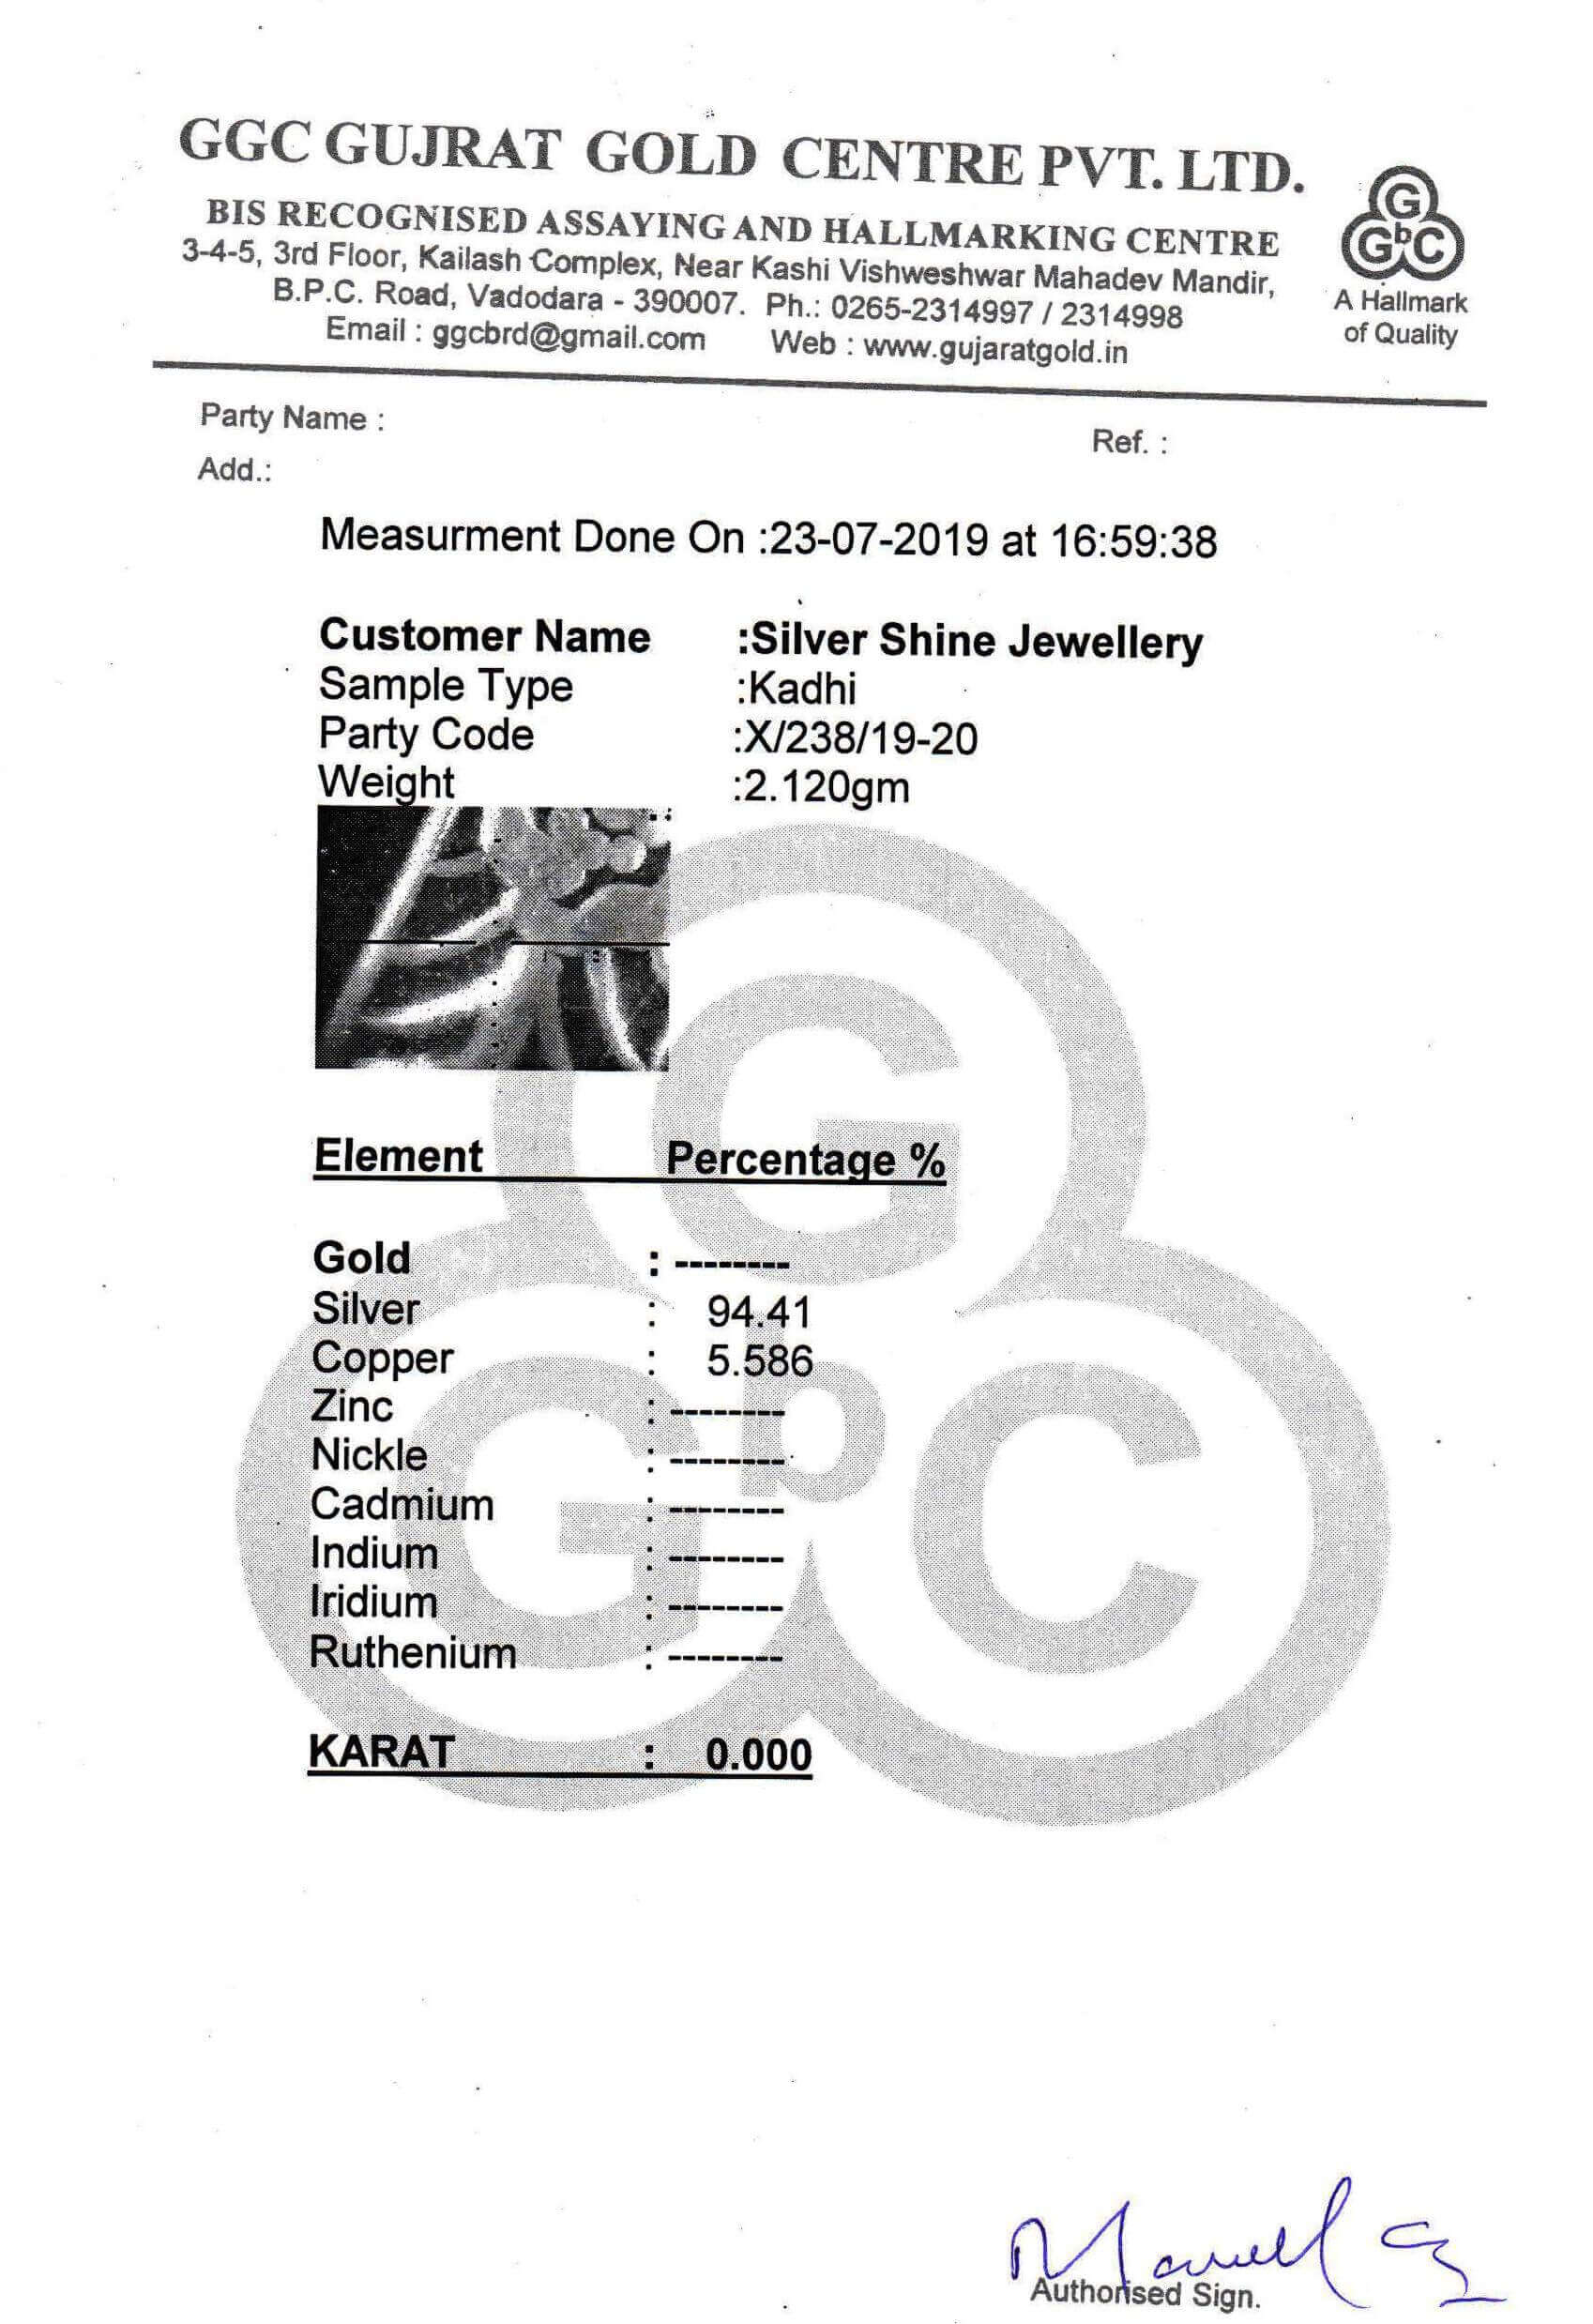 Purity_Certificate_Silver_Shine_8